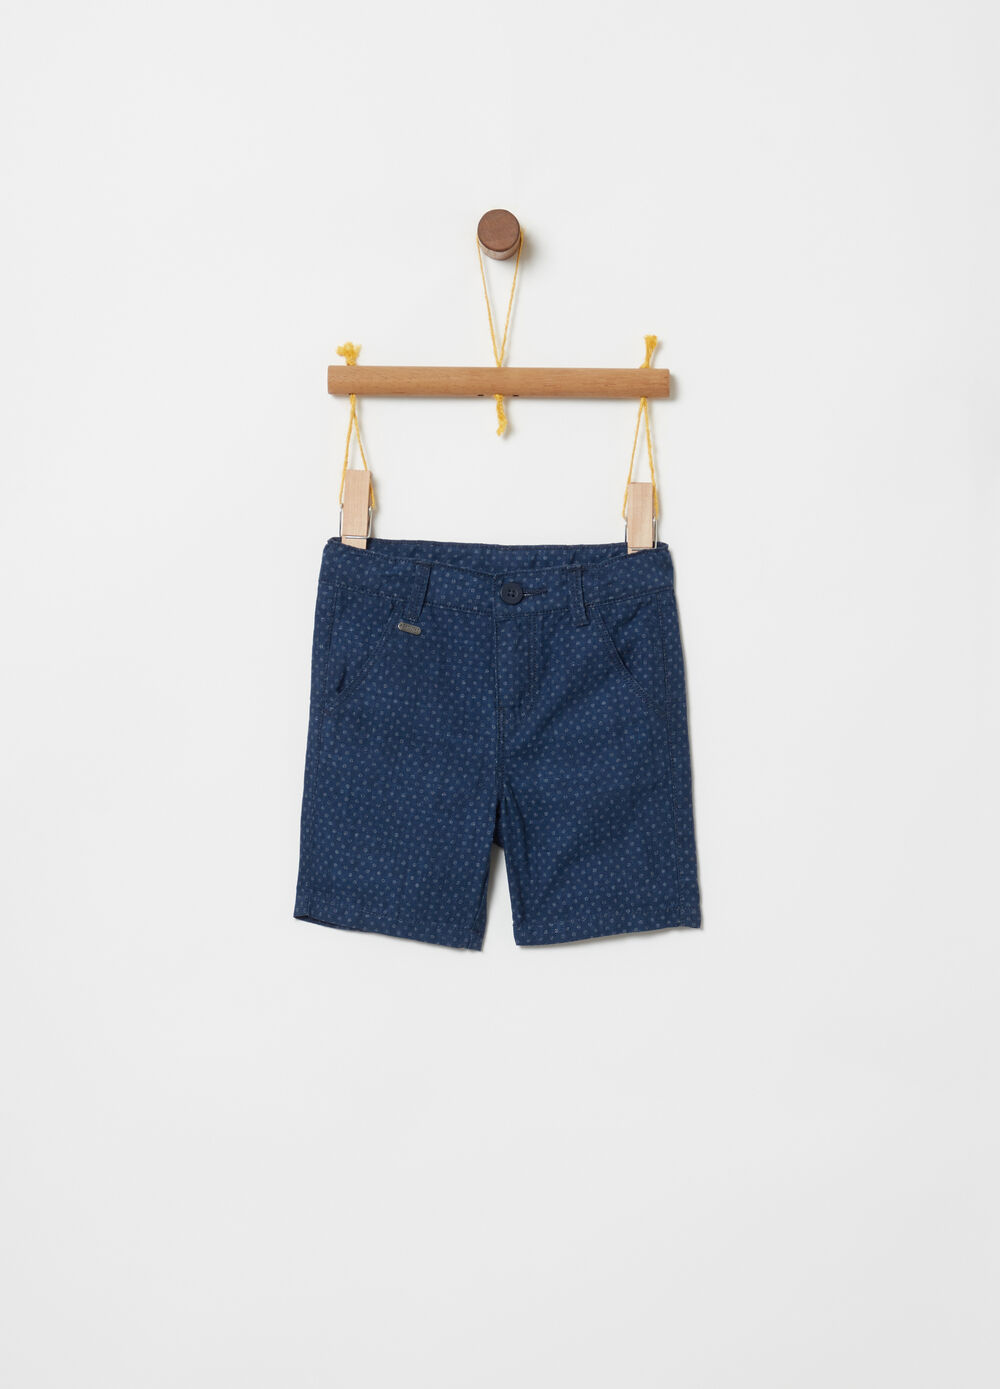 100% cotton Bermuda shorts with pockets and print